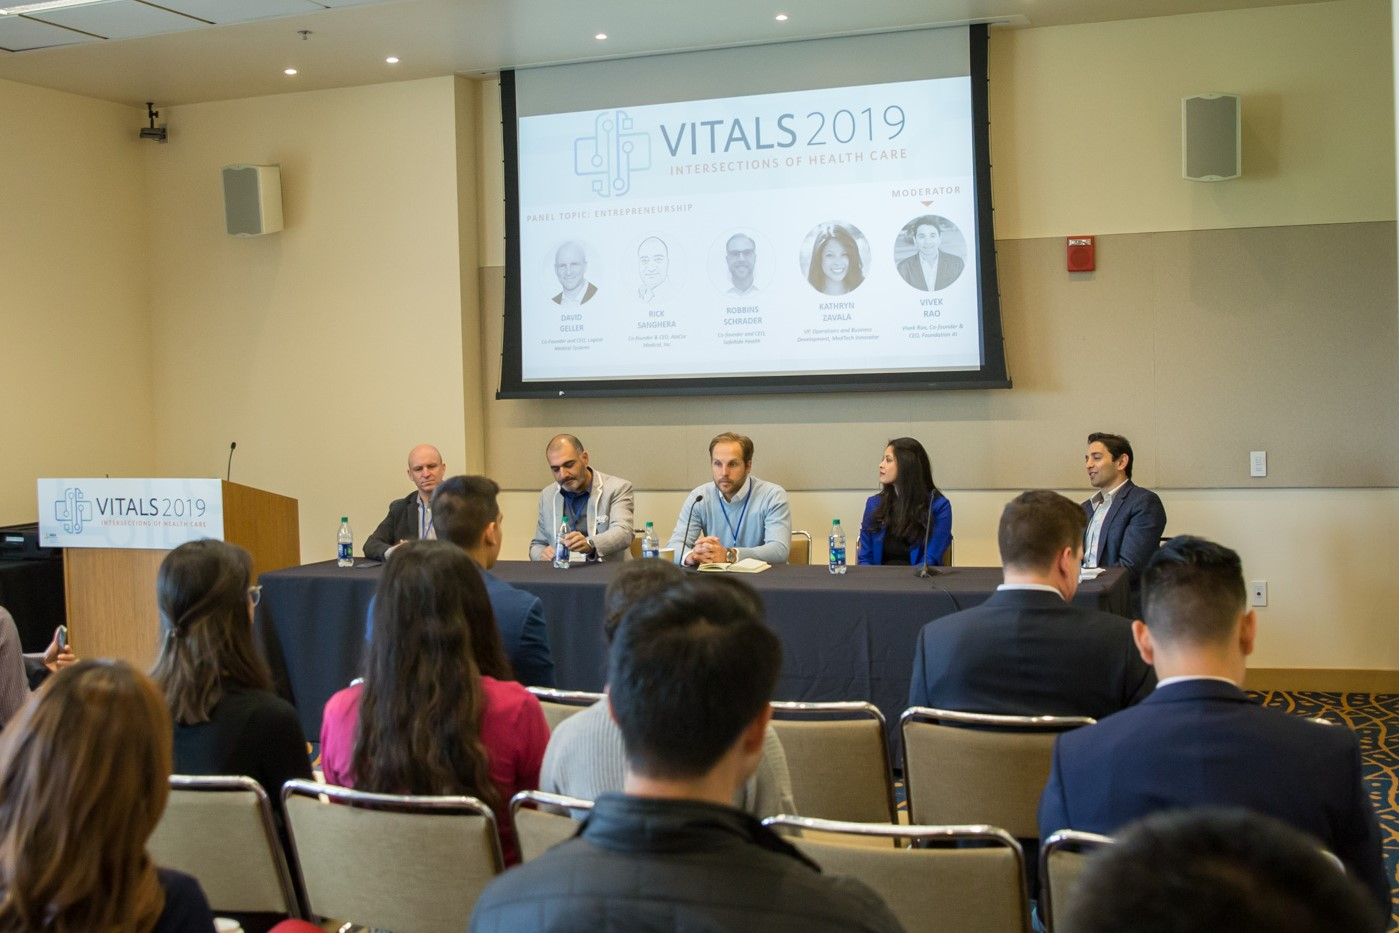 Foundation AI CEO Vivek Rao moderating the Vitals 2019 panel on Entrepreneurship in Healthcare.